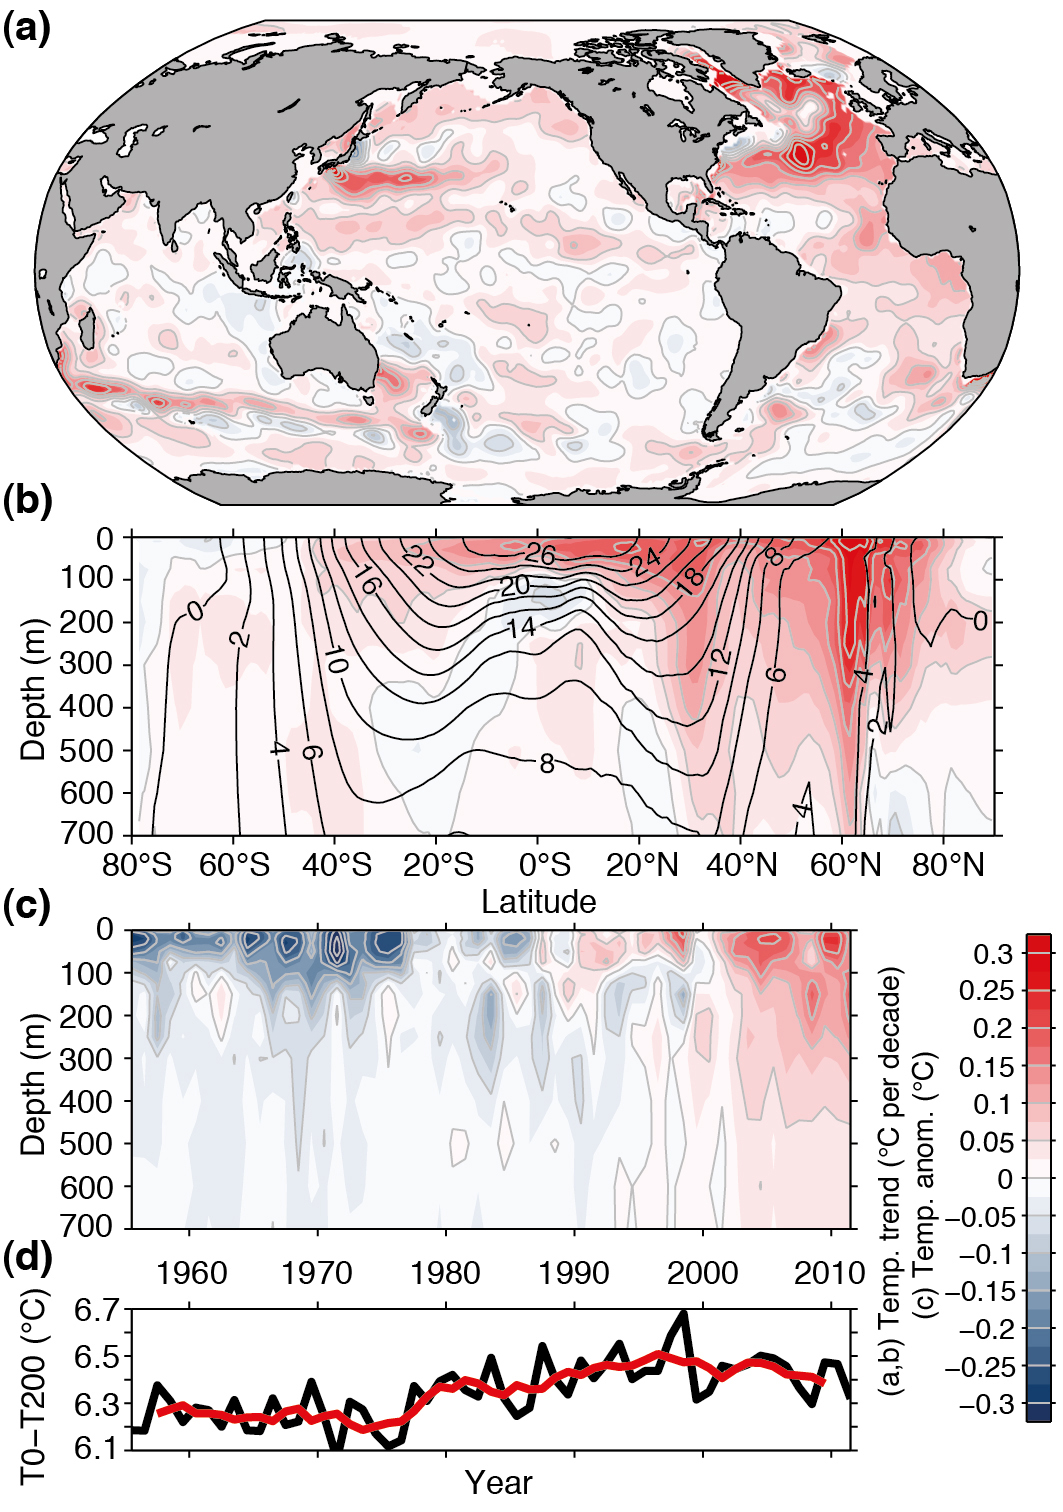 (a) Temperature trend over the top 700 m from 1971-2010. (b) Zonally averaged temperature trend. Black contour lines represent the mean temperature distribution. (c) Horizontally averaged temperature changes. (d) Changes in temperature difference between 200 m and the surface. From Rhein et al. (2013). Image from ipcc.ch.